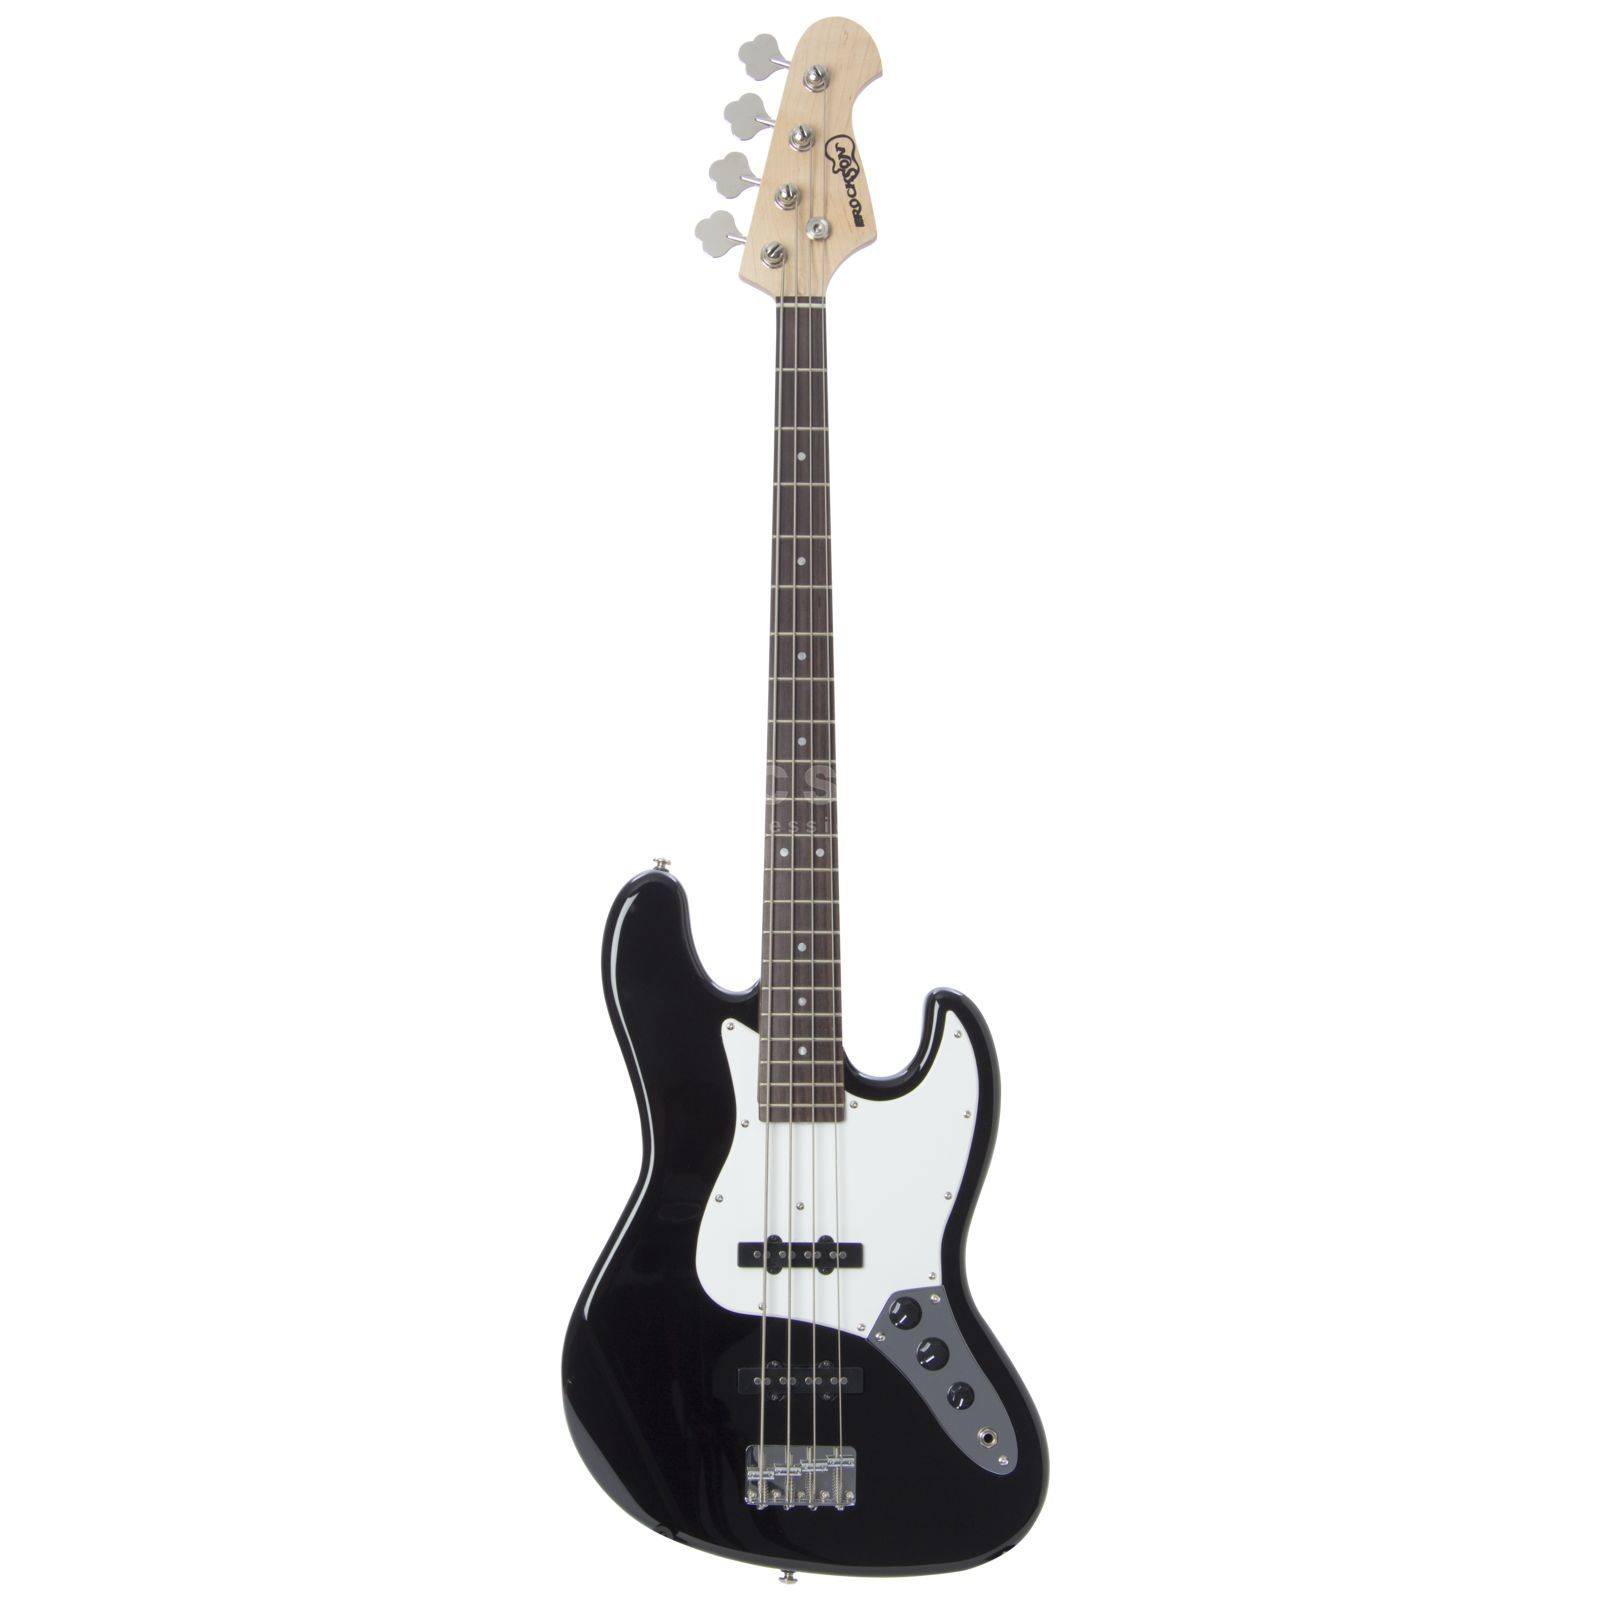 Rockson Bass guitar R-JB99 BK 4-String Black High gloss Product Image